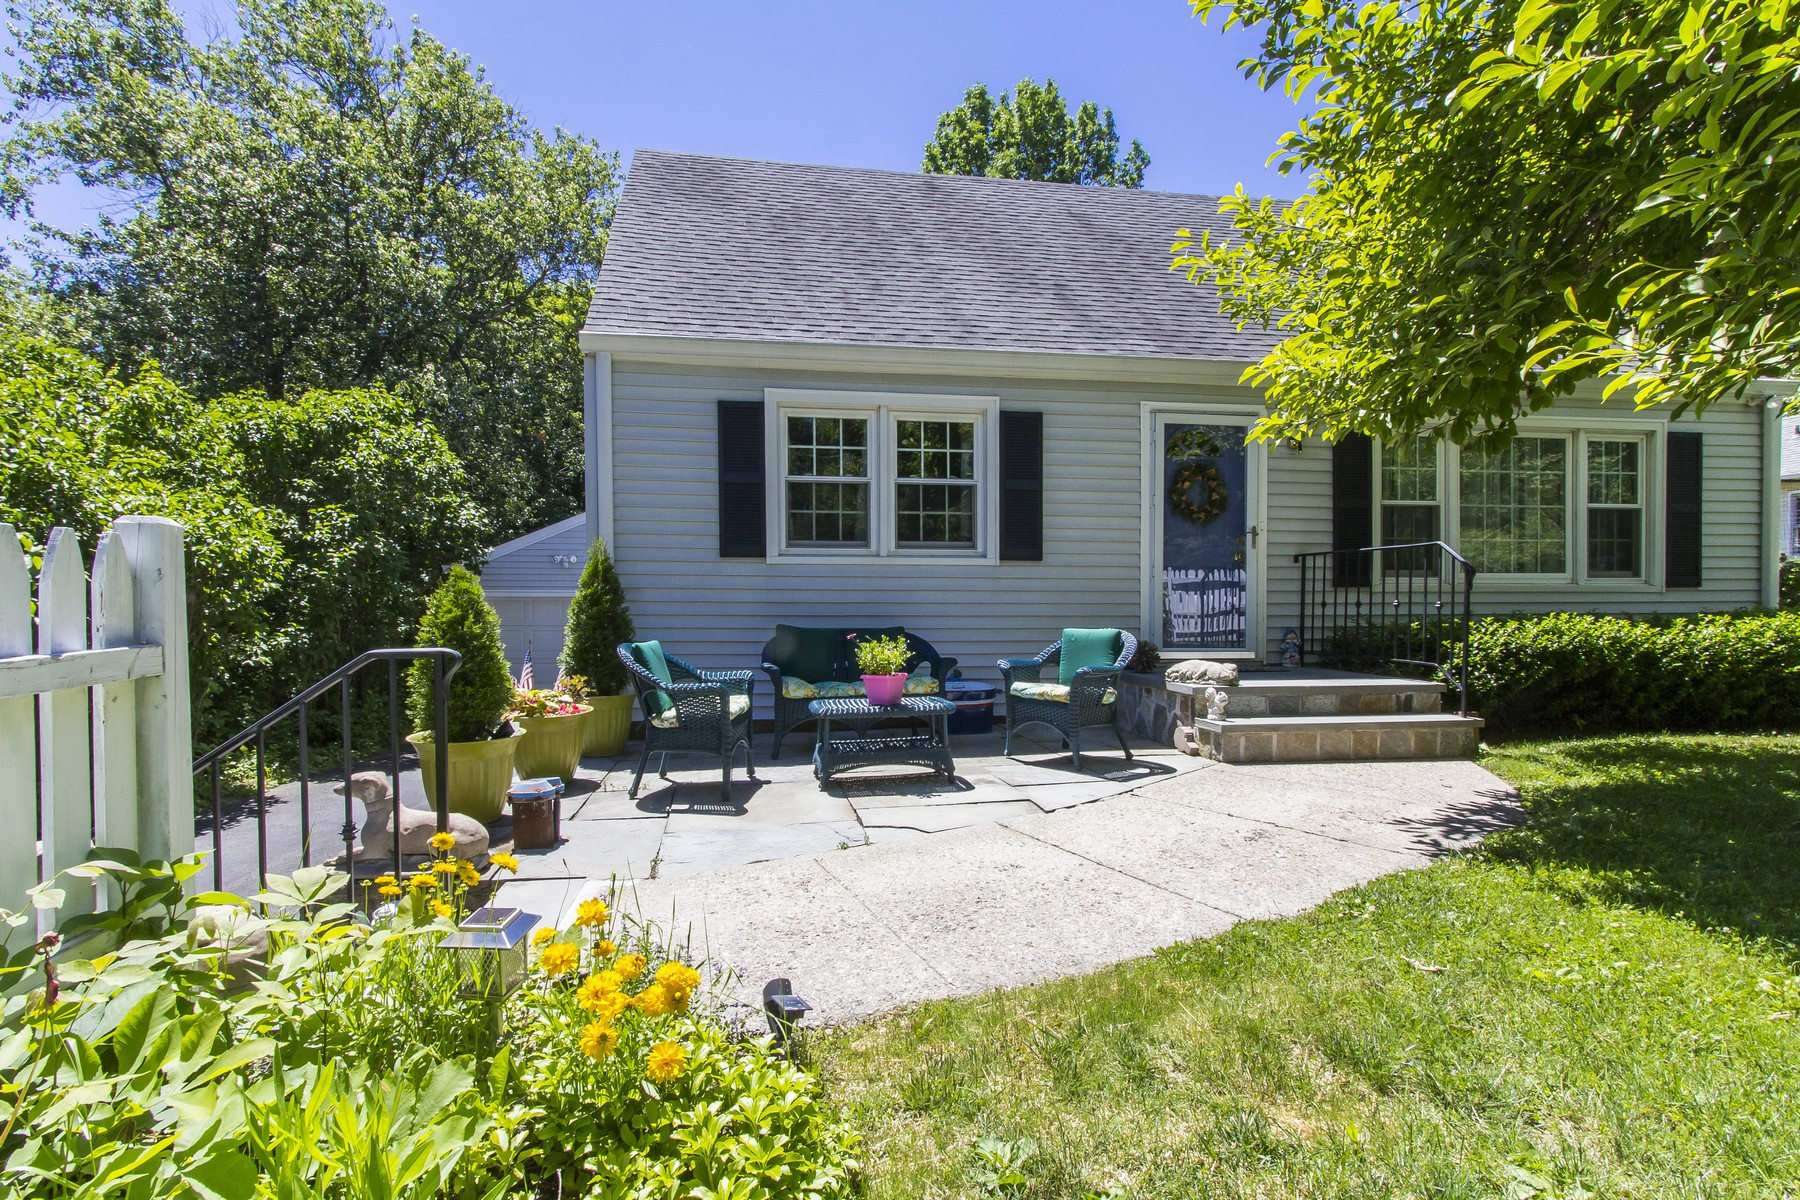 Single Family Home for Sale at In Town Living 9 Ramapoo Hill Road Ridgefield, Connecticut, 06877 United States